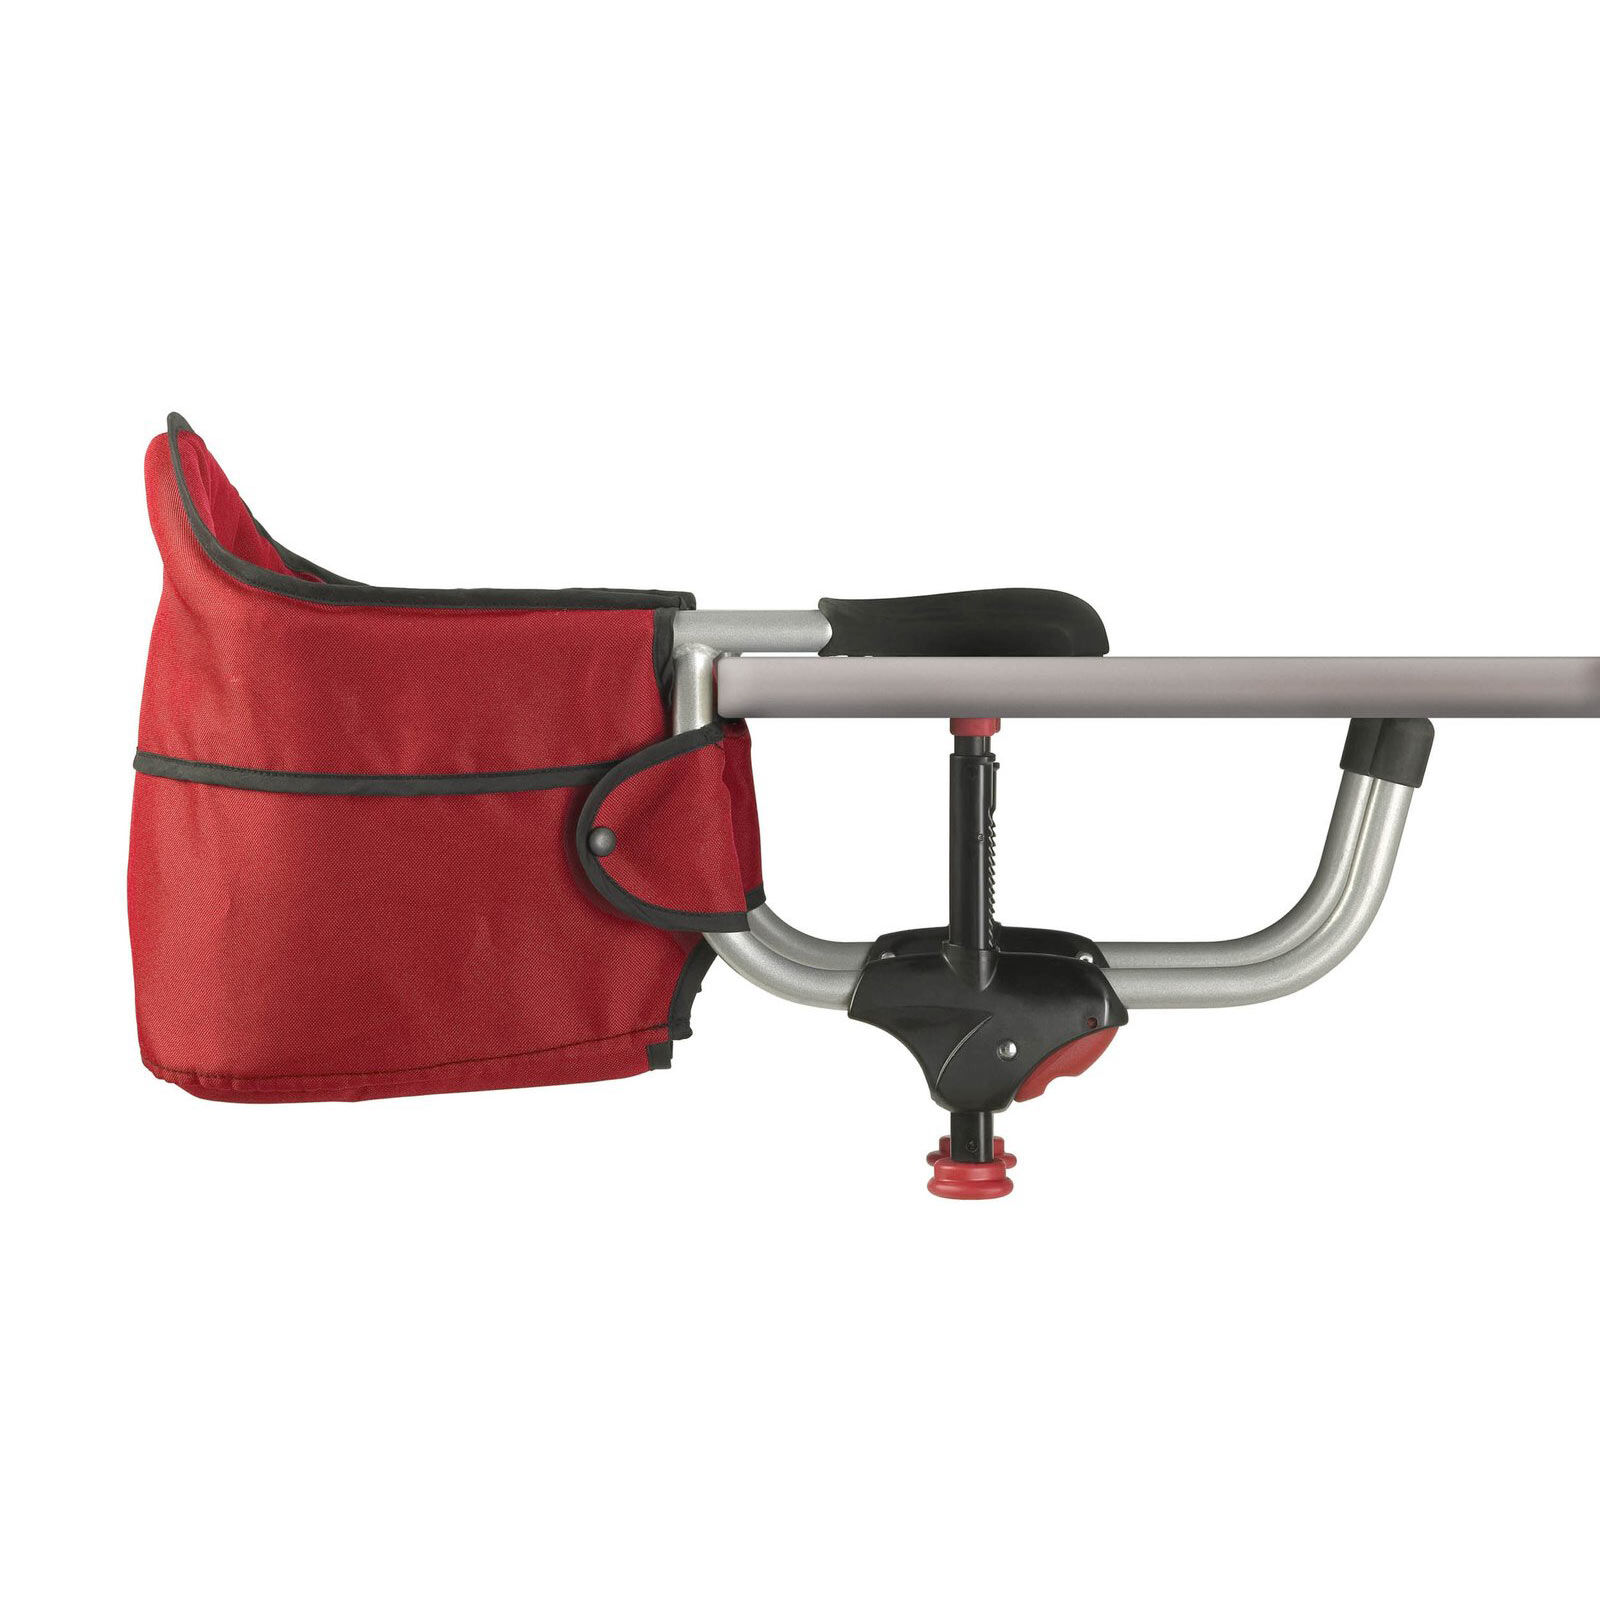 Merveilleux Caddy Hook On Chair   Red